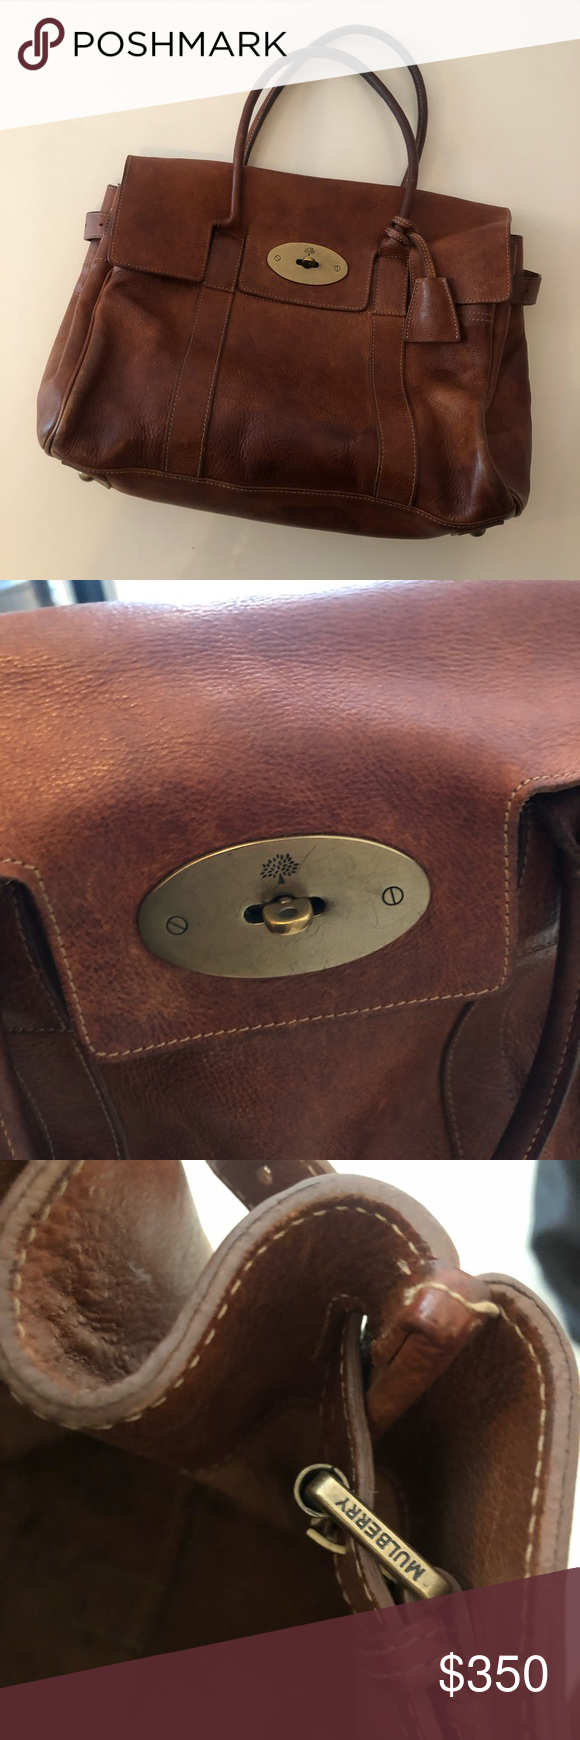 Mulberry Bayswater Heritage Bayswater Mulberry Bags #mulberrybag Mulberry Bayswater Heritage Bayswater Mulberry Bags #mulberrybag Mulberry Bayswater Heritage Bayswater Mulberry Bags #mulberrybag Mulberry Bayswater Heritage Bayswater Mulberry Bags #mulberrybag